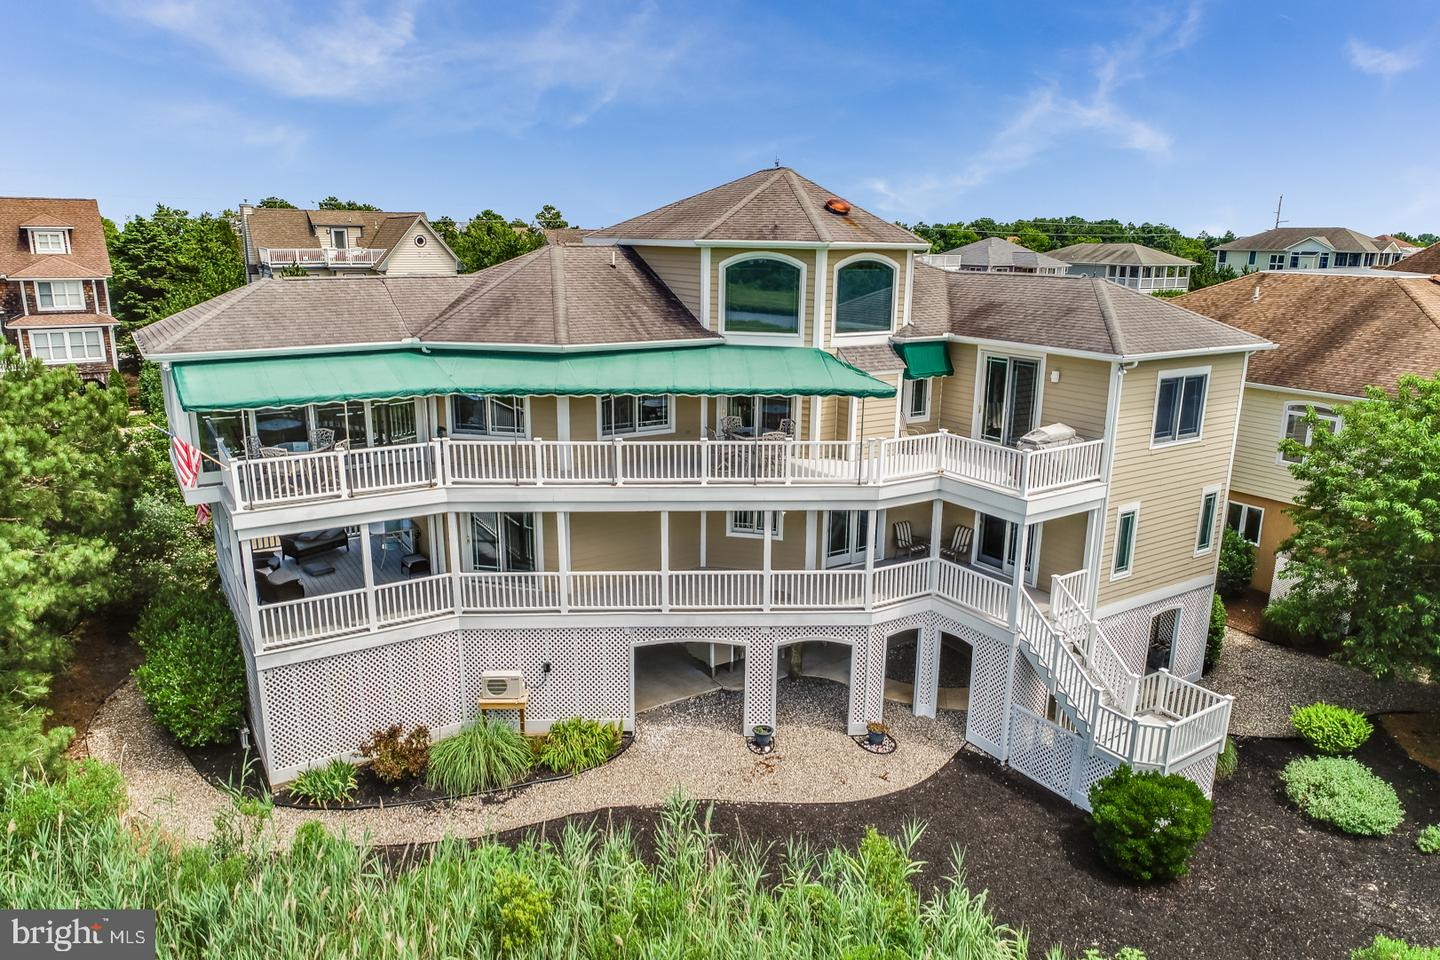 DESU144366-301896695359-2019-08-01-09-55-08 305 Le Pointe Dr | North Bethany, De Real Estate For Sale | MLS# Desu144366  - Suzanne Macnab